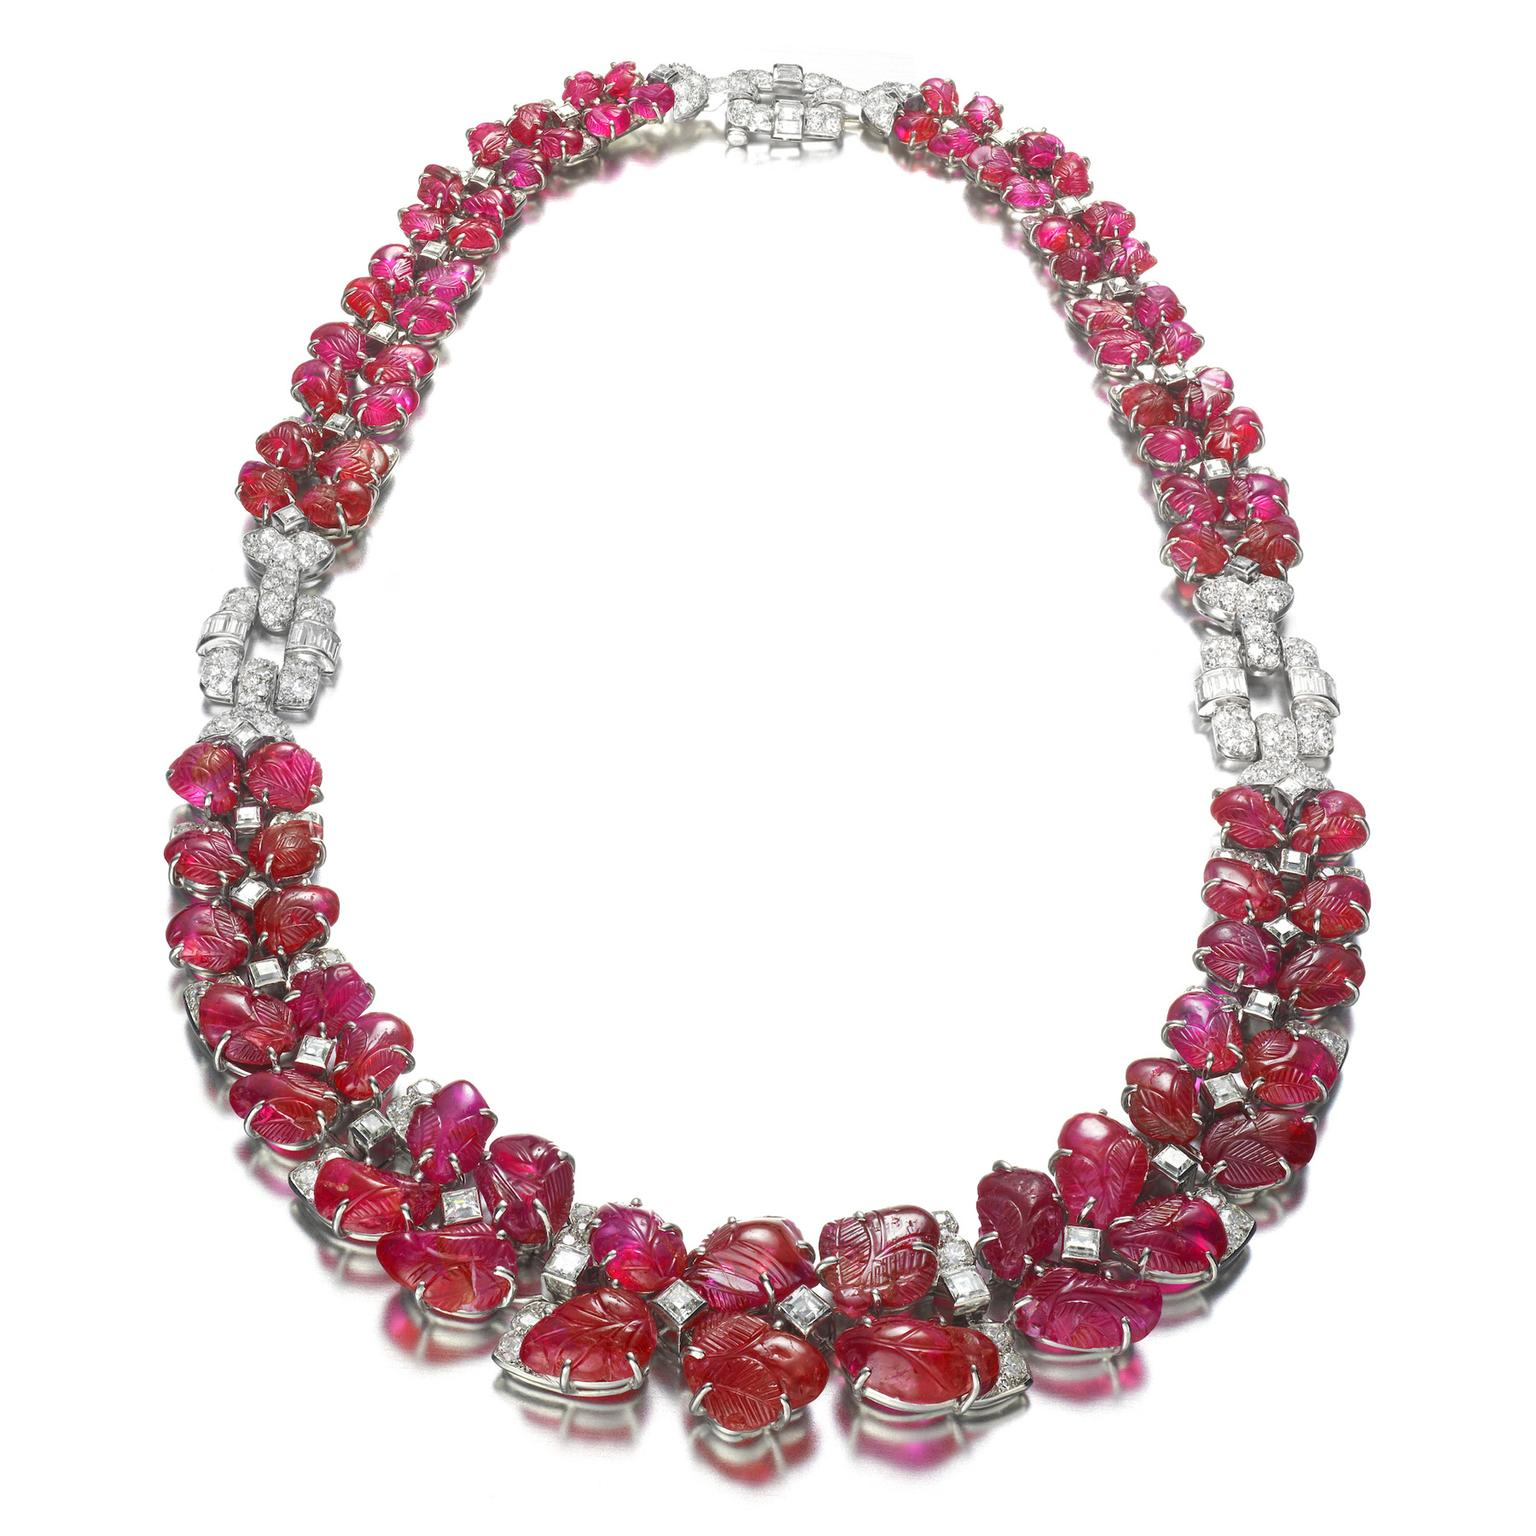 Van Cleef & Arpels Art Deco necklace with carved rubies and diamonds from 1929